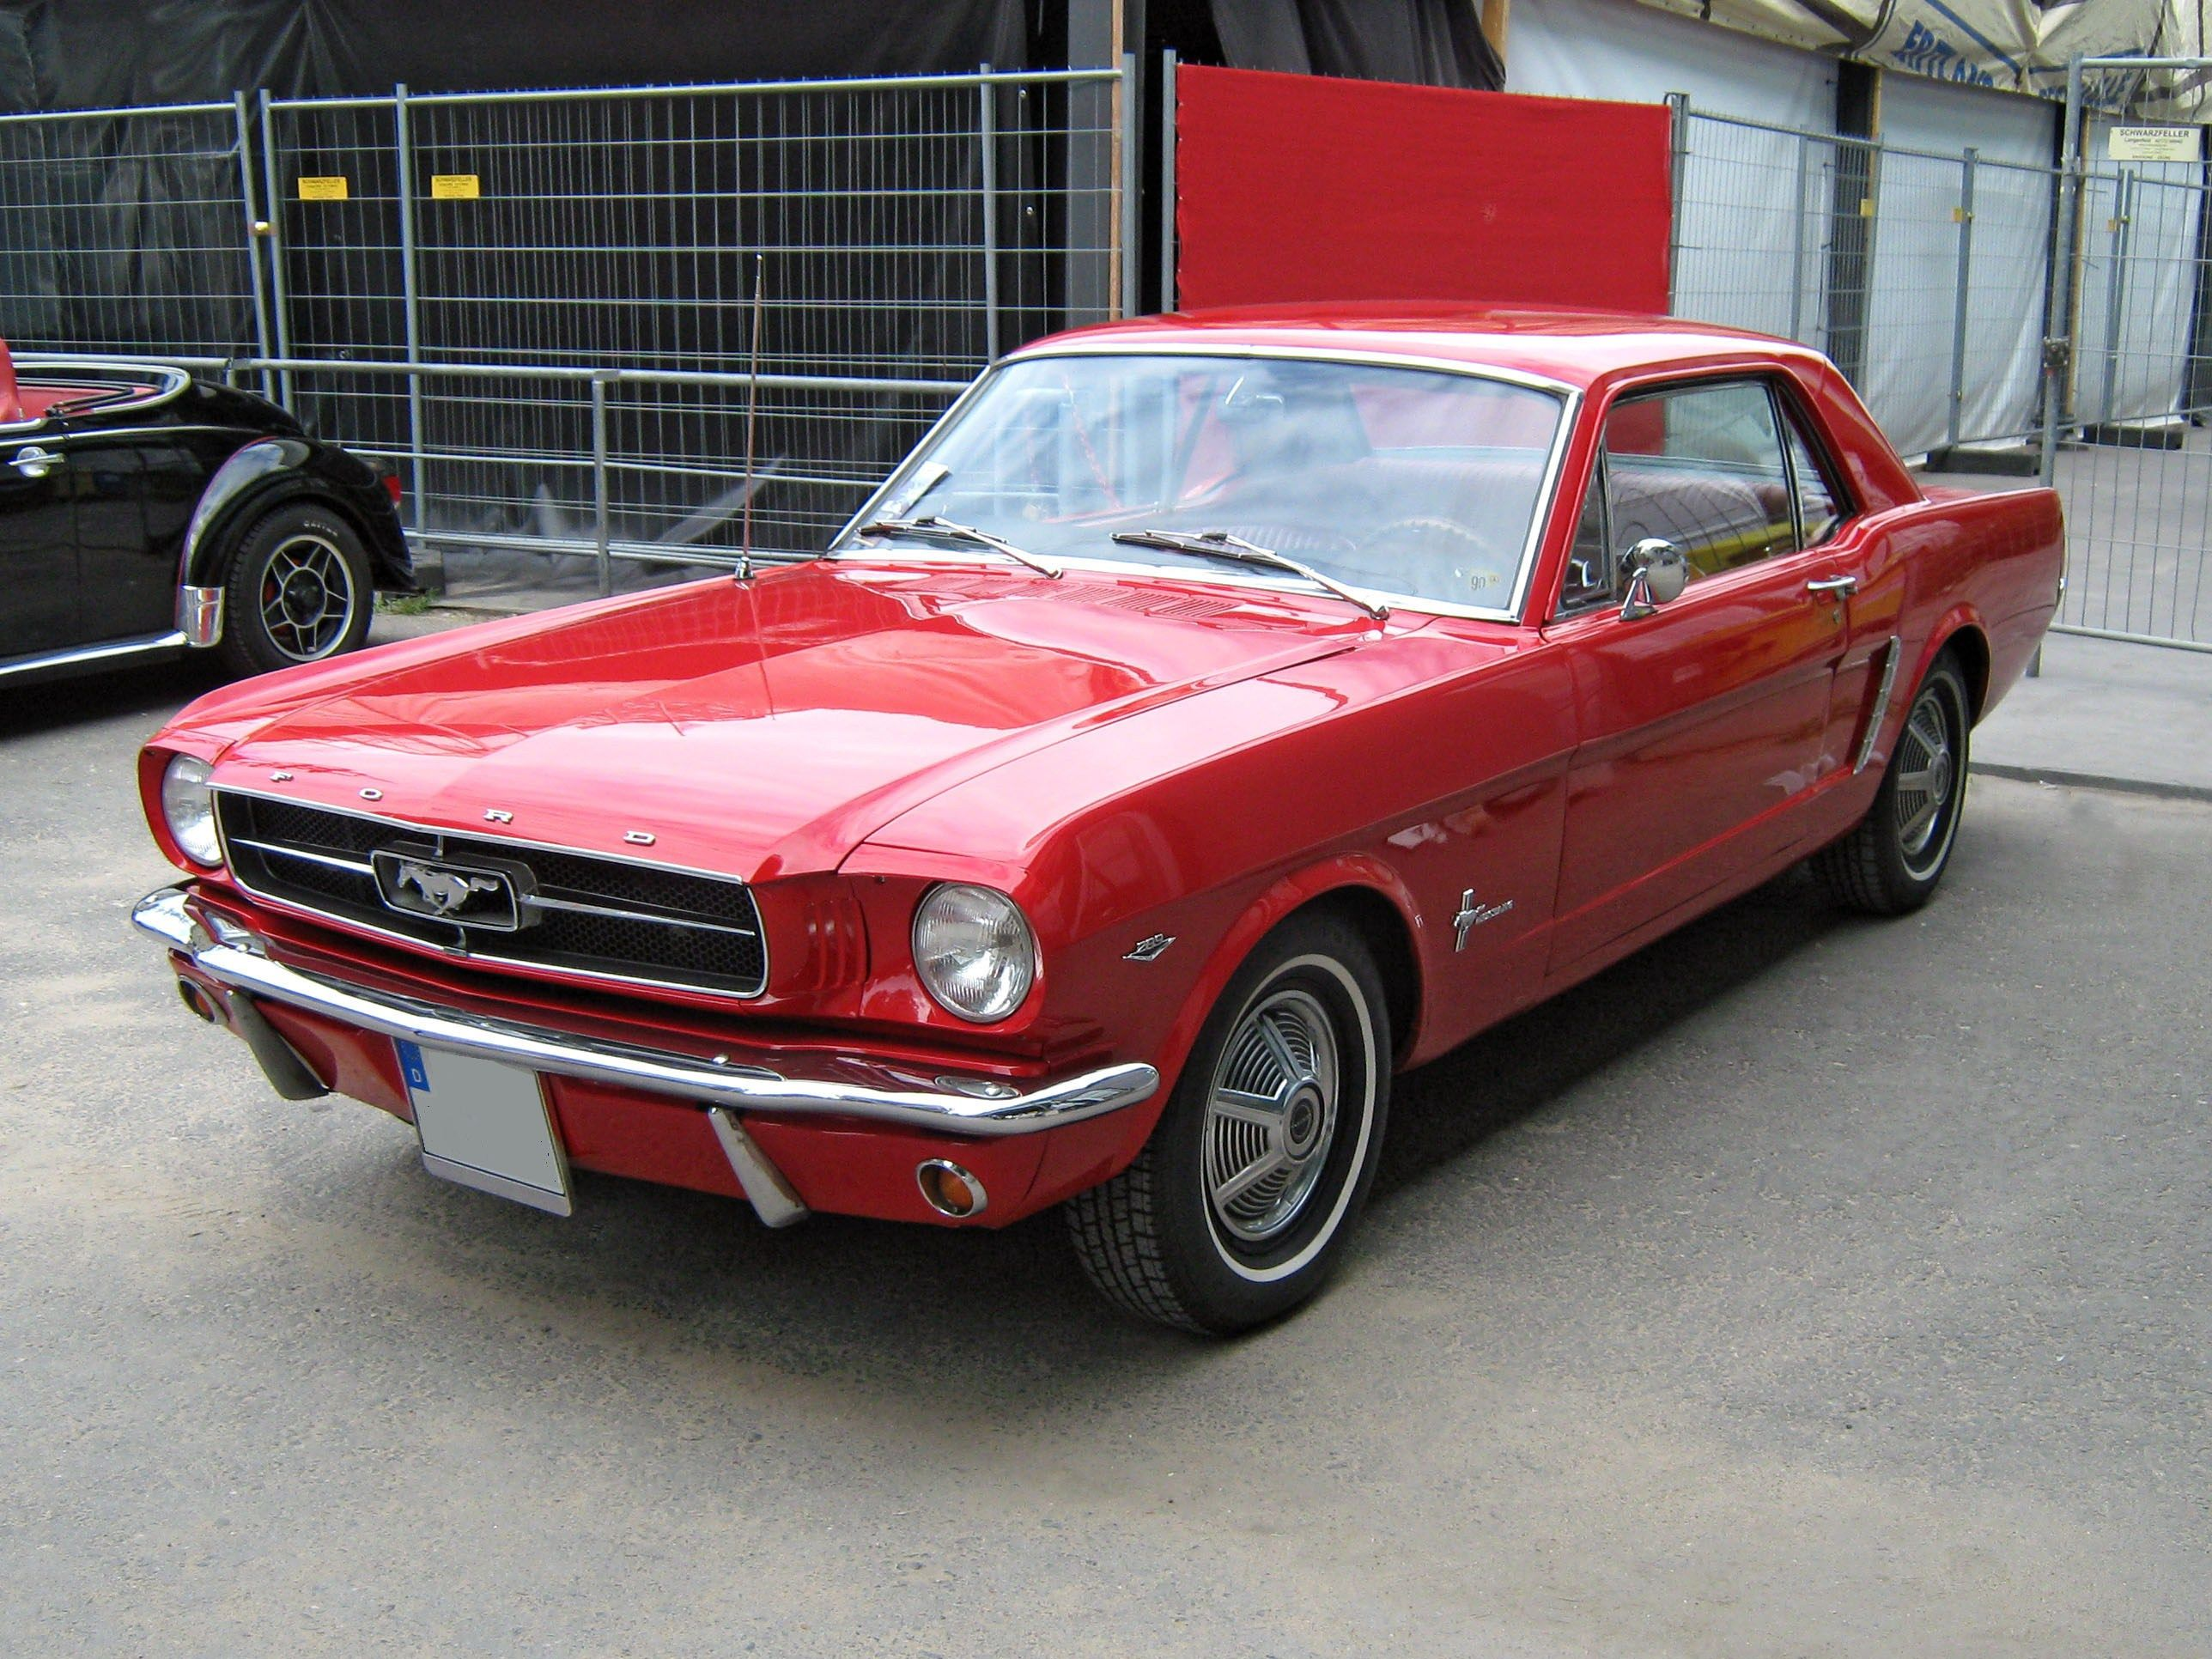 Ford Mustang Years 1965 MPV Cars Vehicles Pinterest